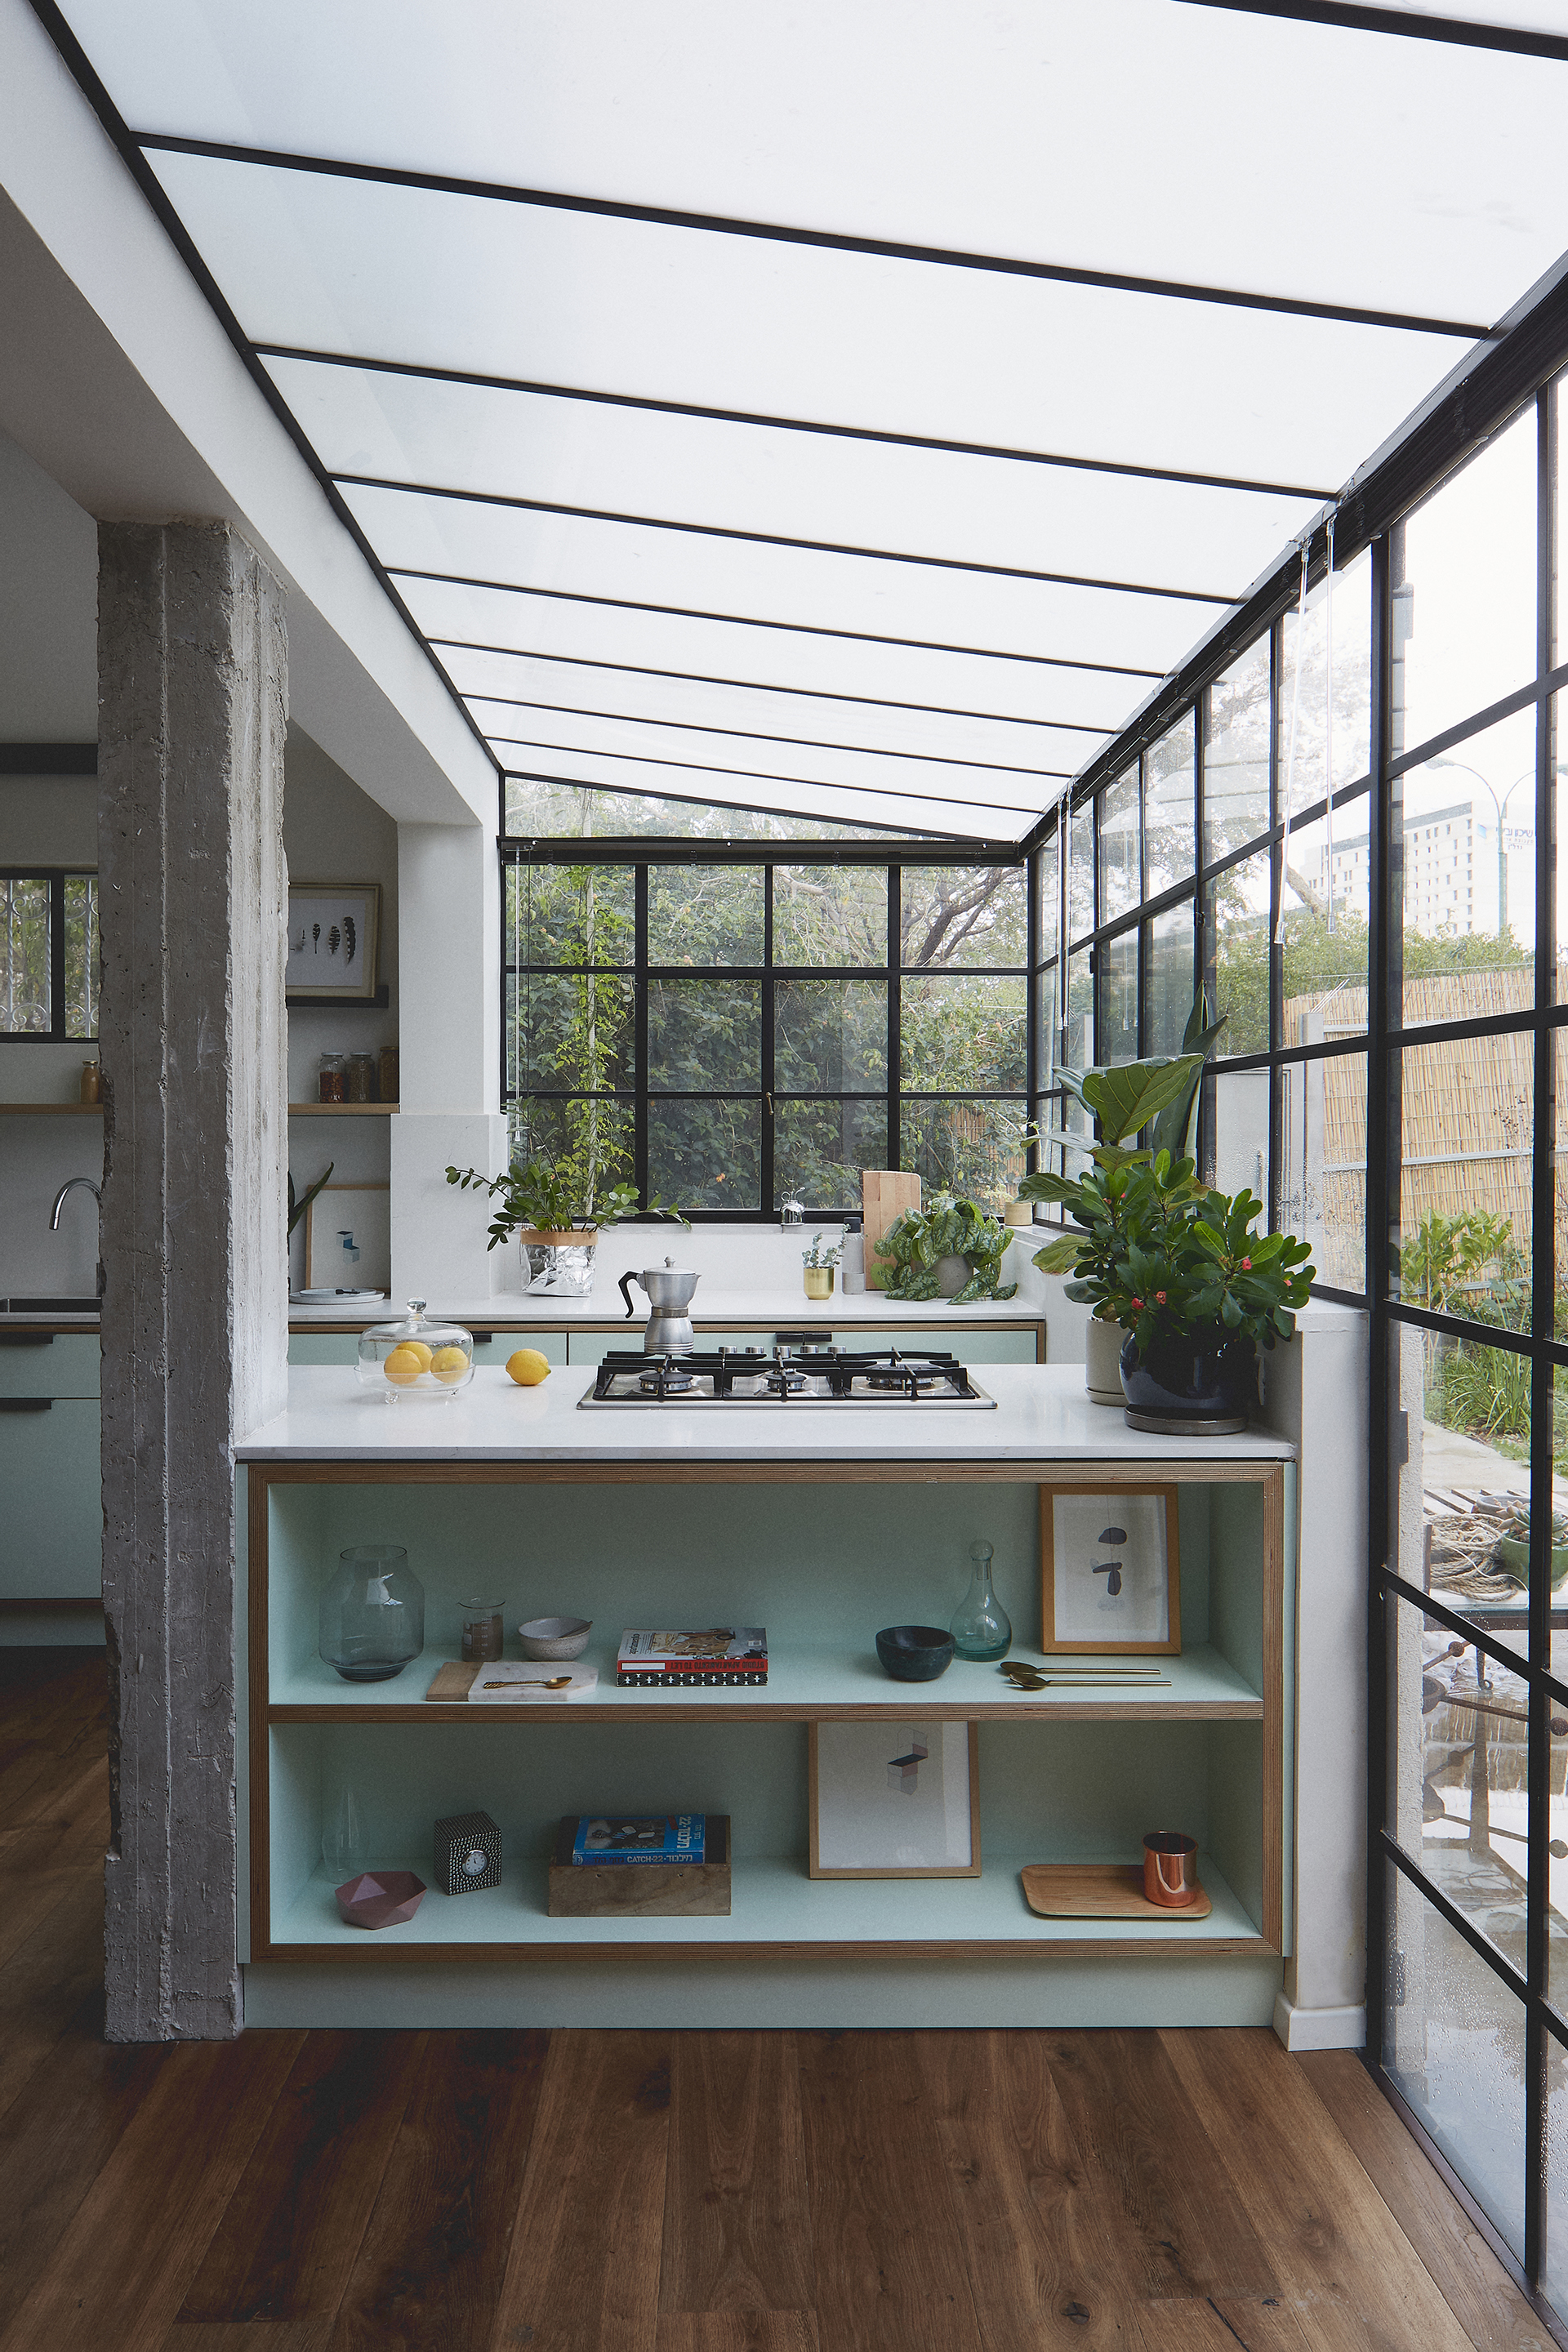 greenhouse-like kitchen in mint green